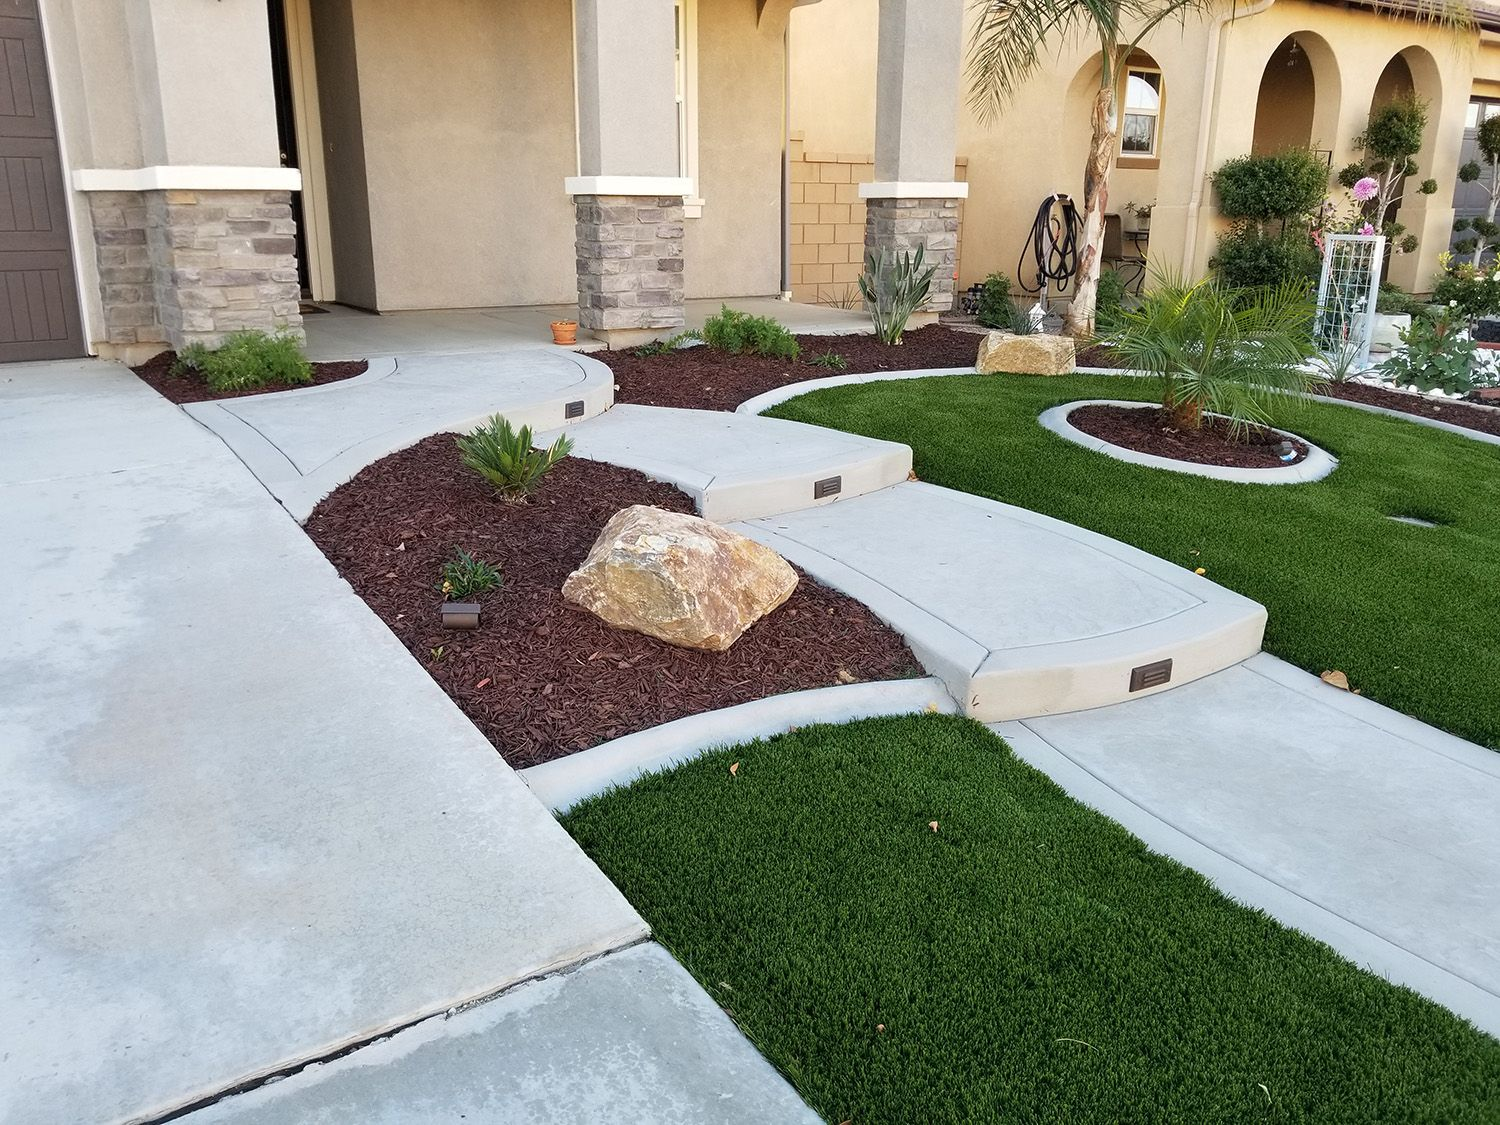 A Residential Front Yard Landscape With Artificial Turf Tropical Plantings A Concrete Wa Front Yard Landscaping Small Front Yard Landscaping Yard Landscaping